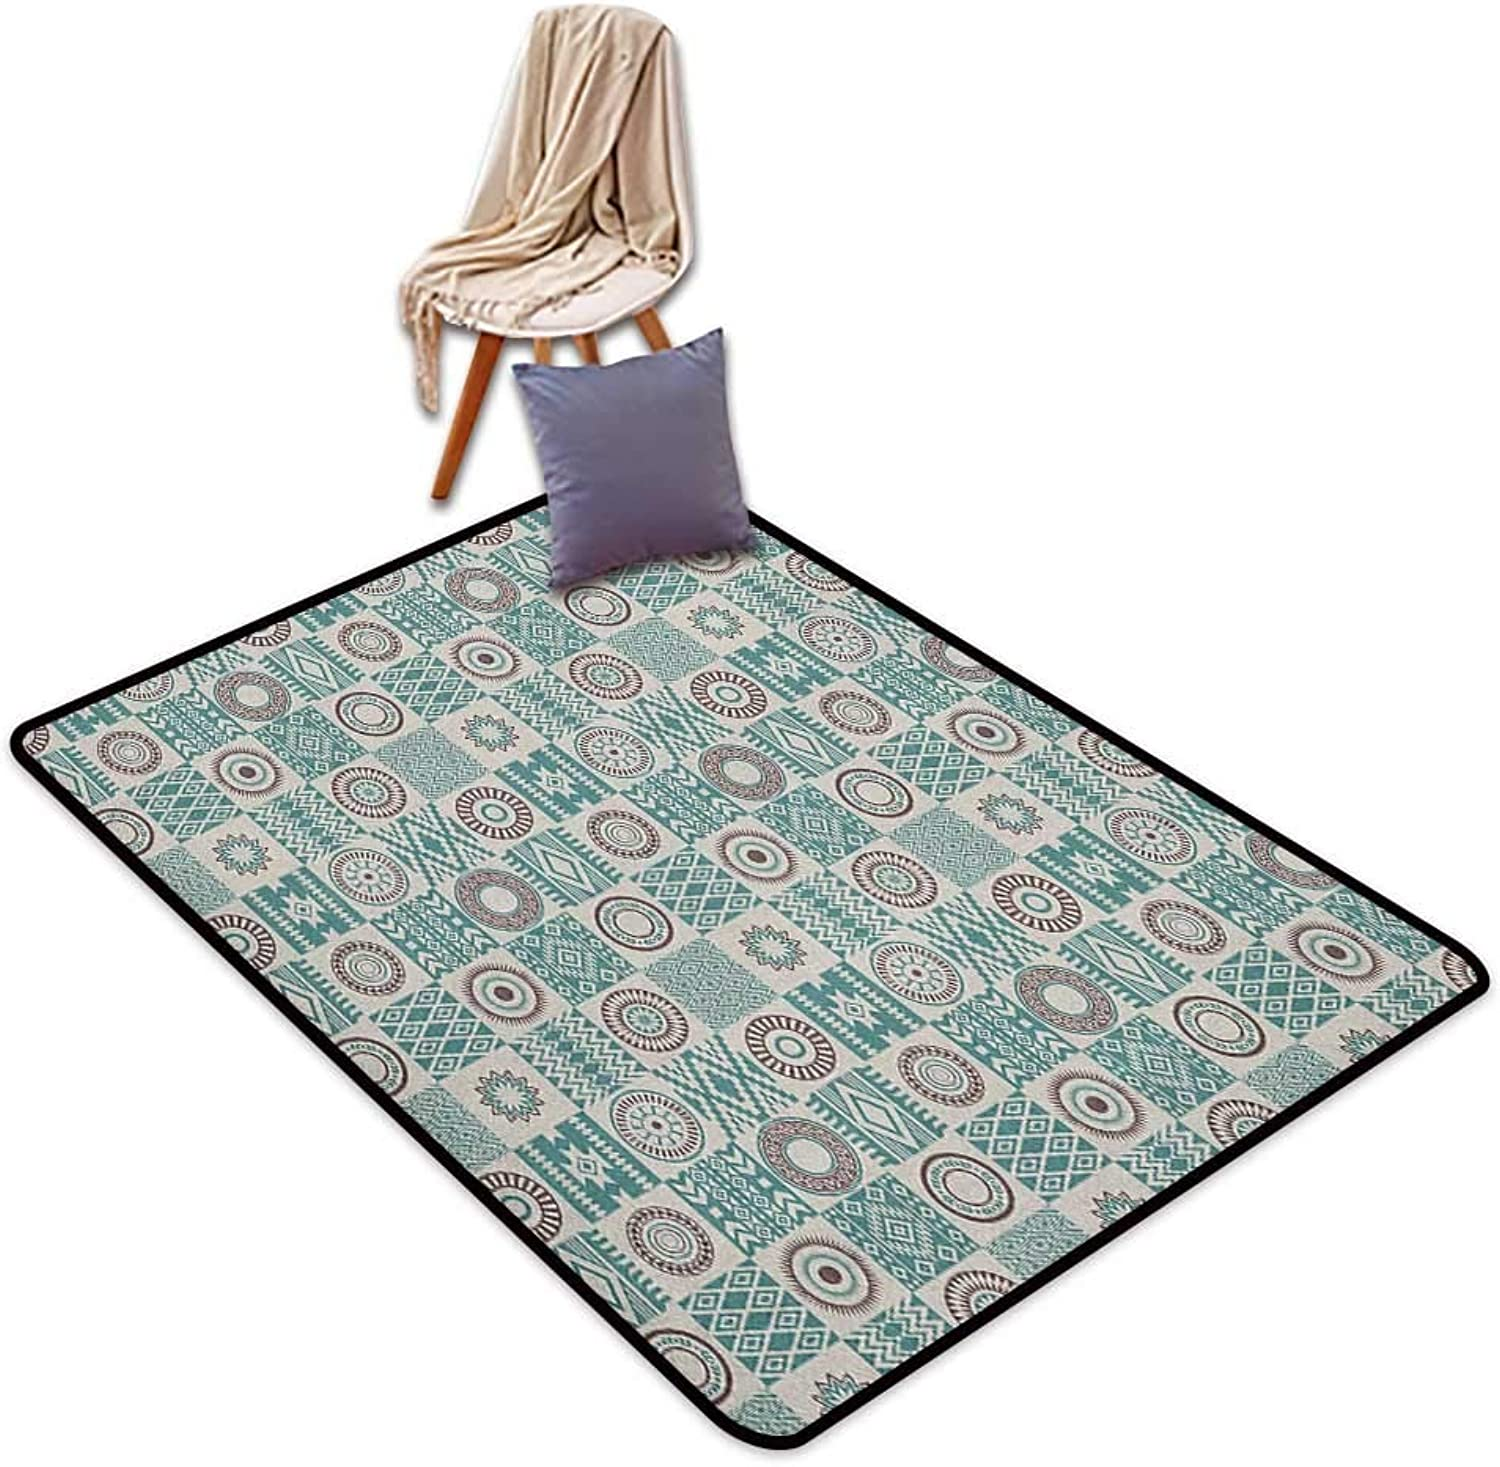 Inner Door Rug Afghan Checkered Squares with Ethnic Motifs Rhombuses Circles and Stripes Outside The Door Rug W5'xL7'